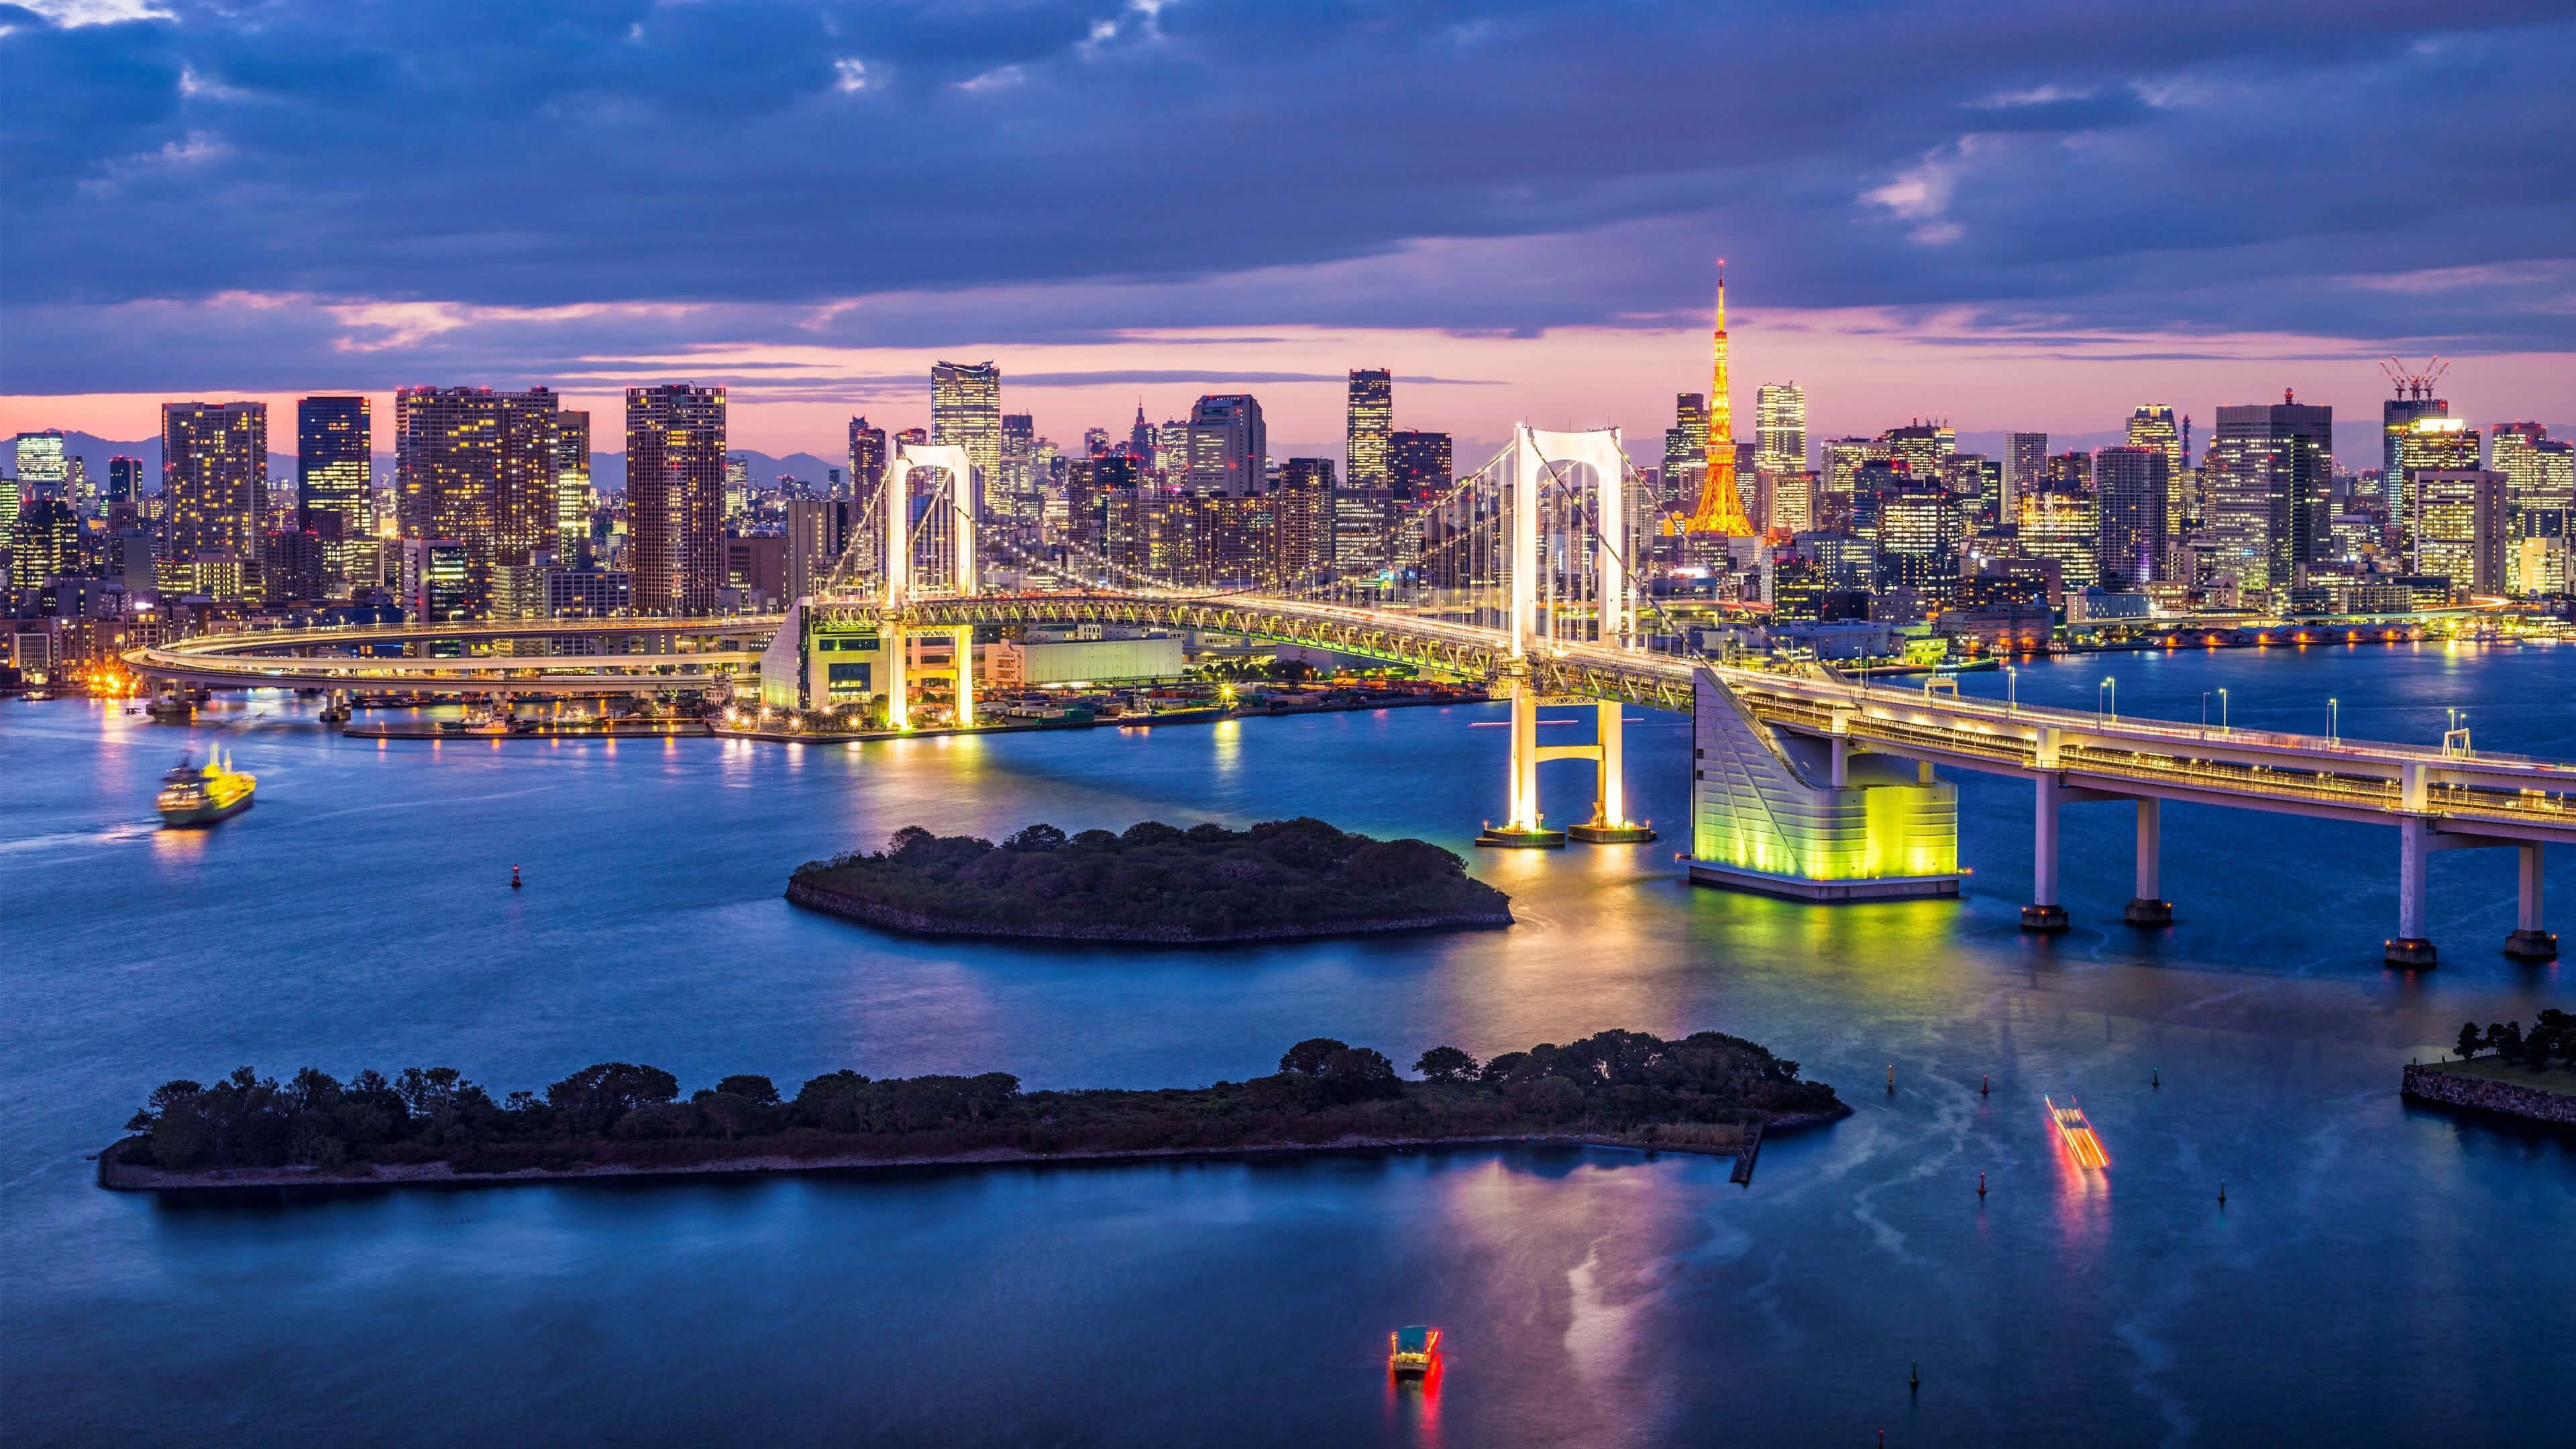 Res: 3840x2160, rainbow bridge tokyo japan uhd 4k wallpaper